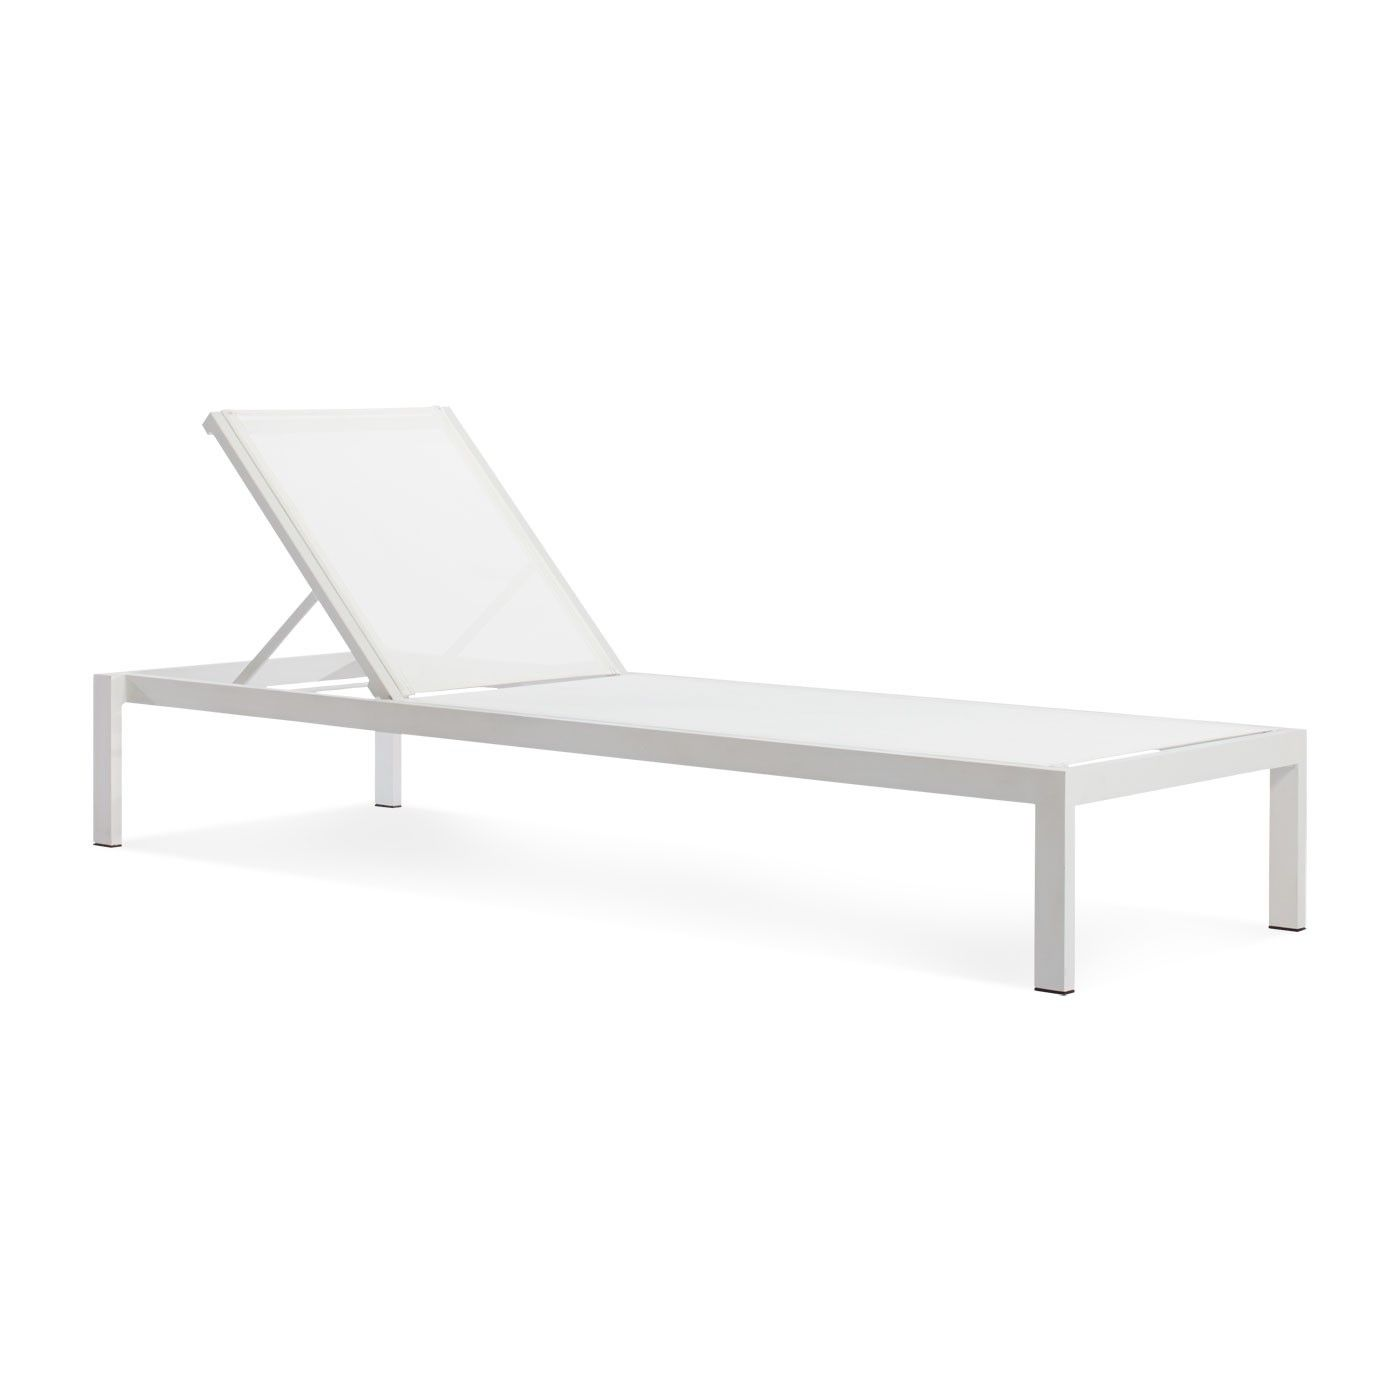 Modern outdoor lounge chair - Skiff Outdoor Sun Lounger Modern Outdoor Furniture Blu Dot